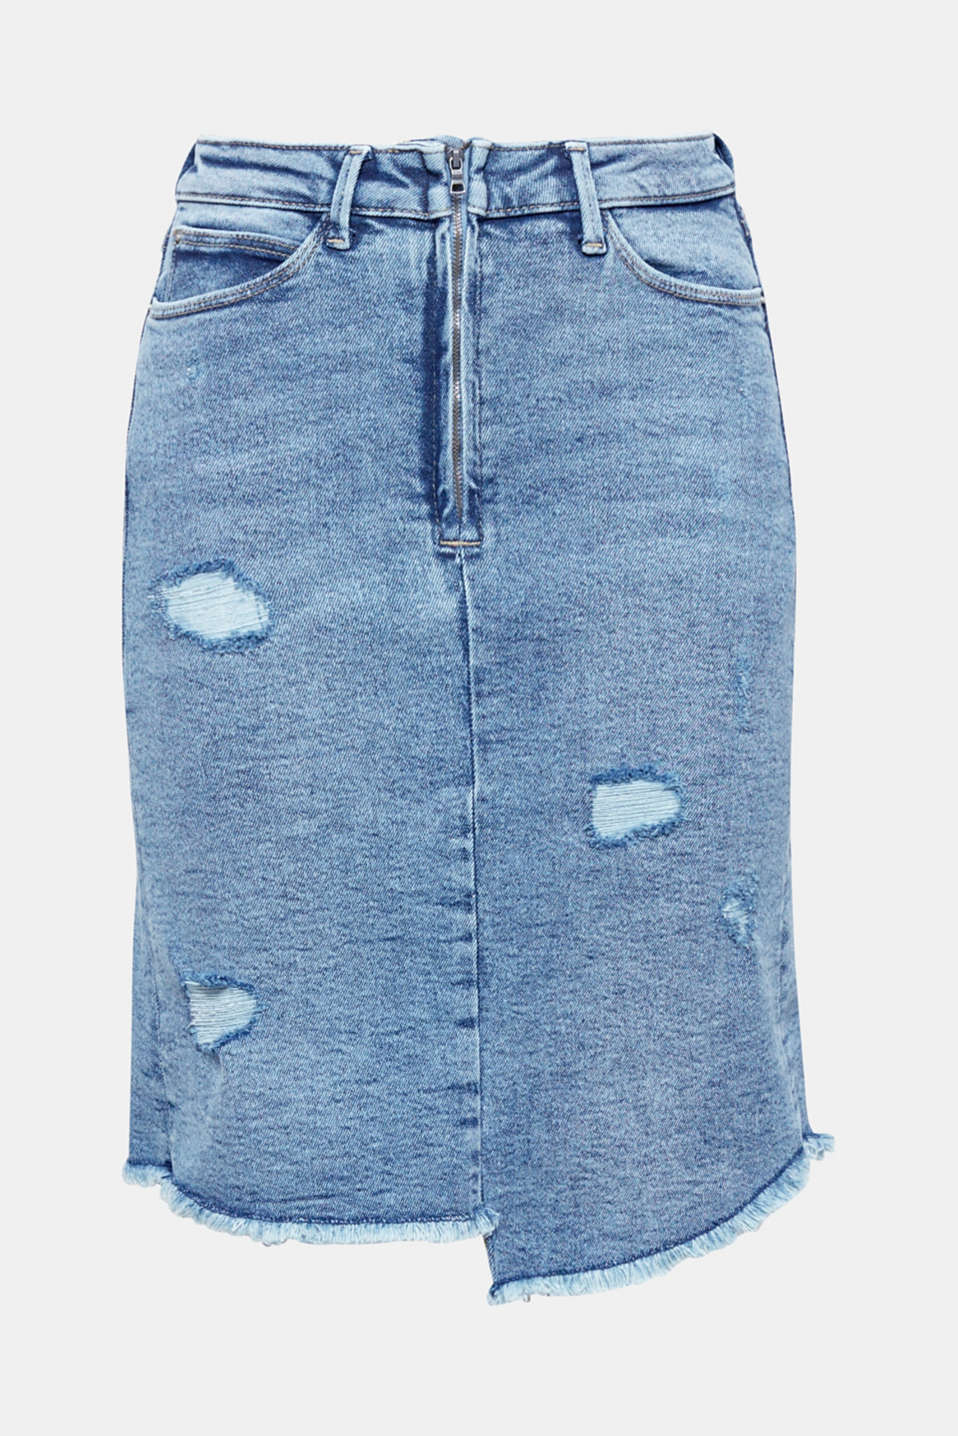 Makes a super cool statement: slightly flared skirt made of stretch denim with an intense vintage finish and a frayed hem!